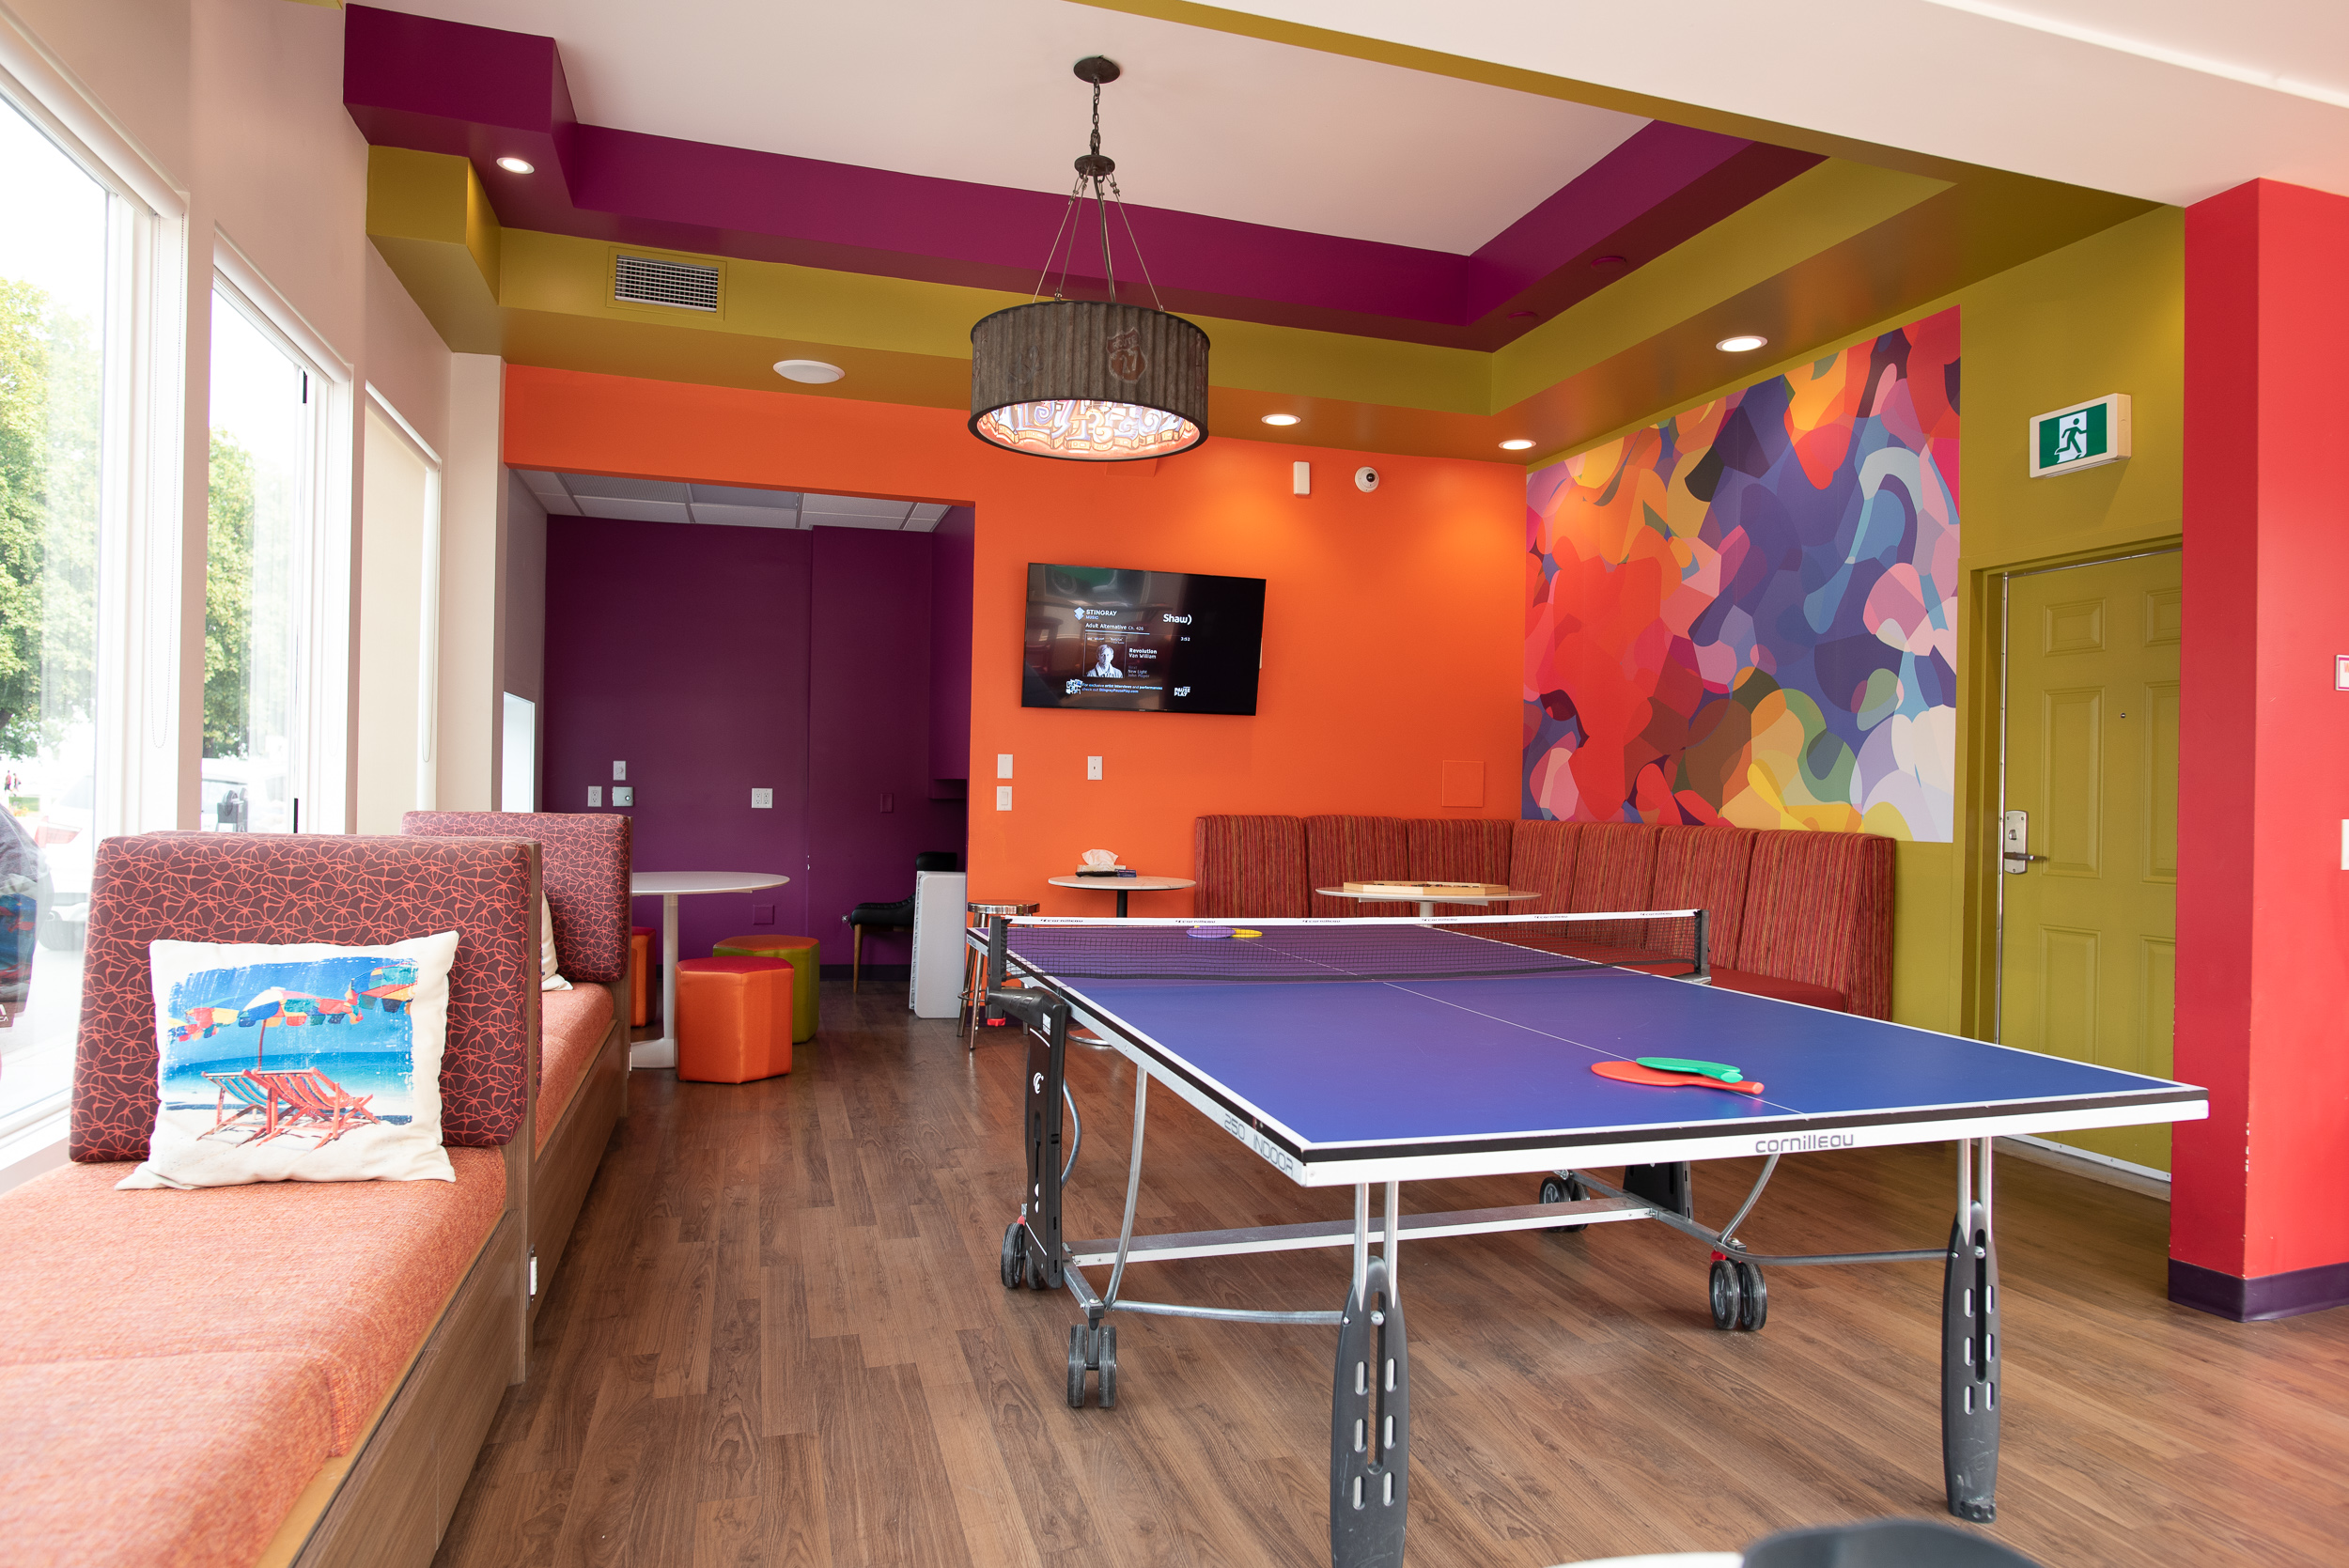 Inside the Ping Pong Lounge.